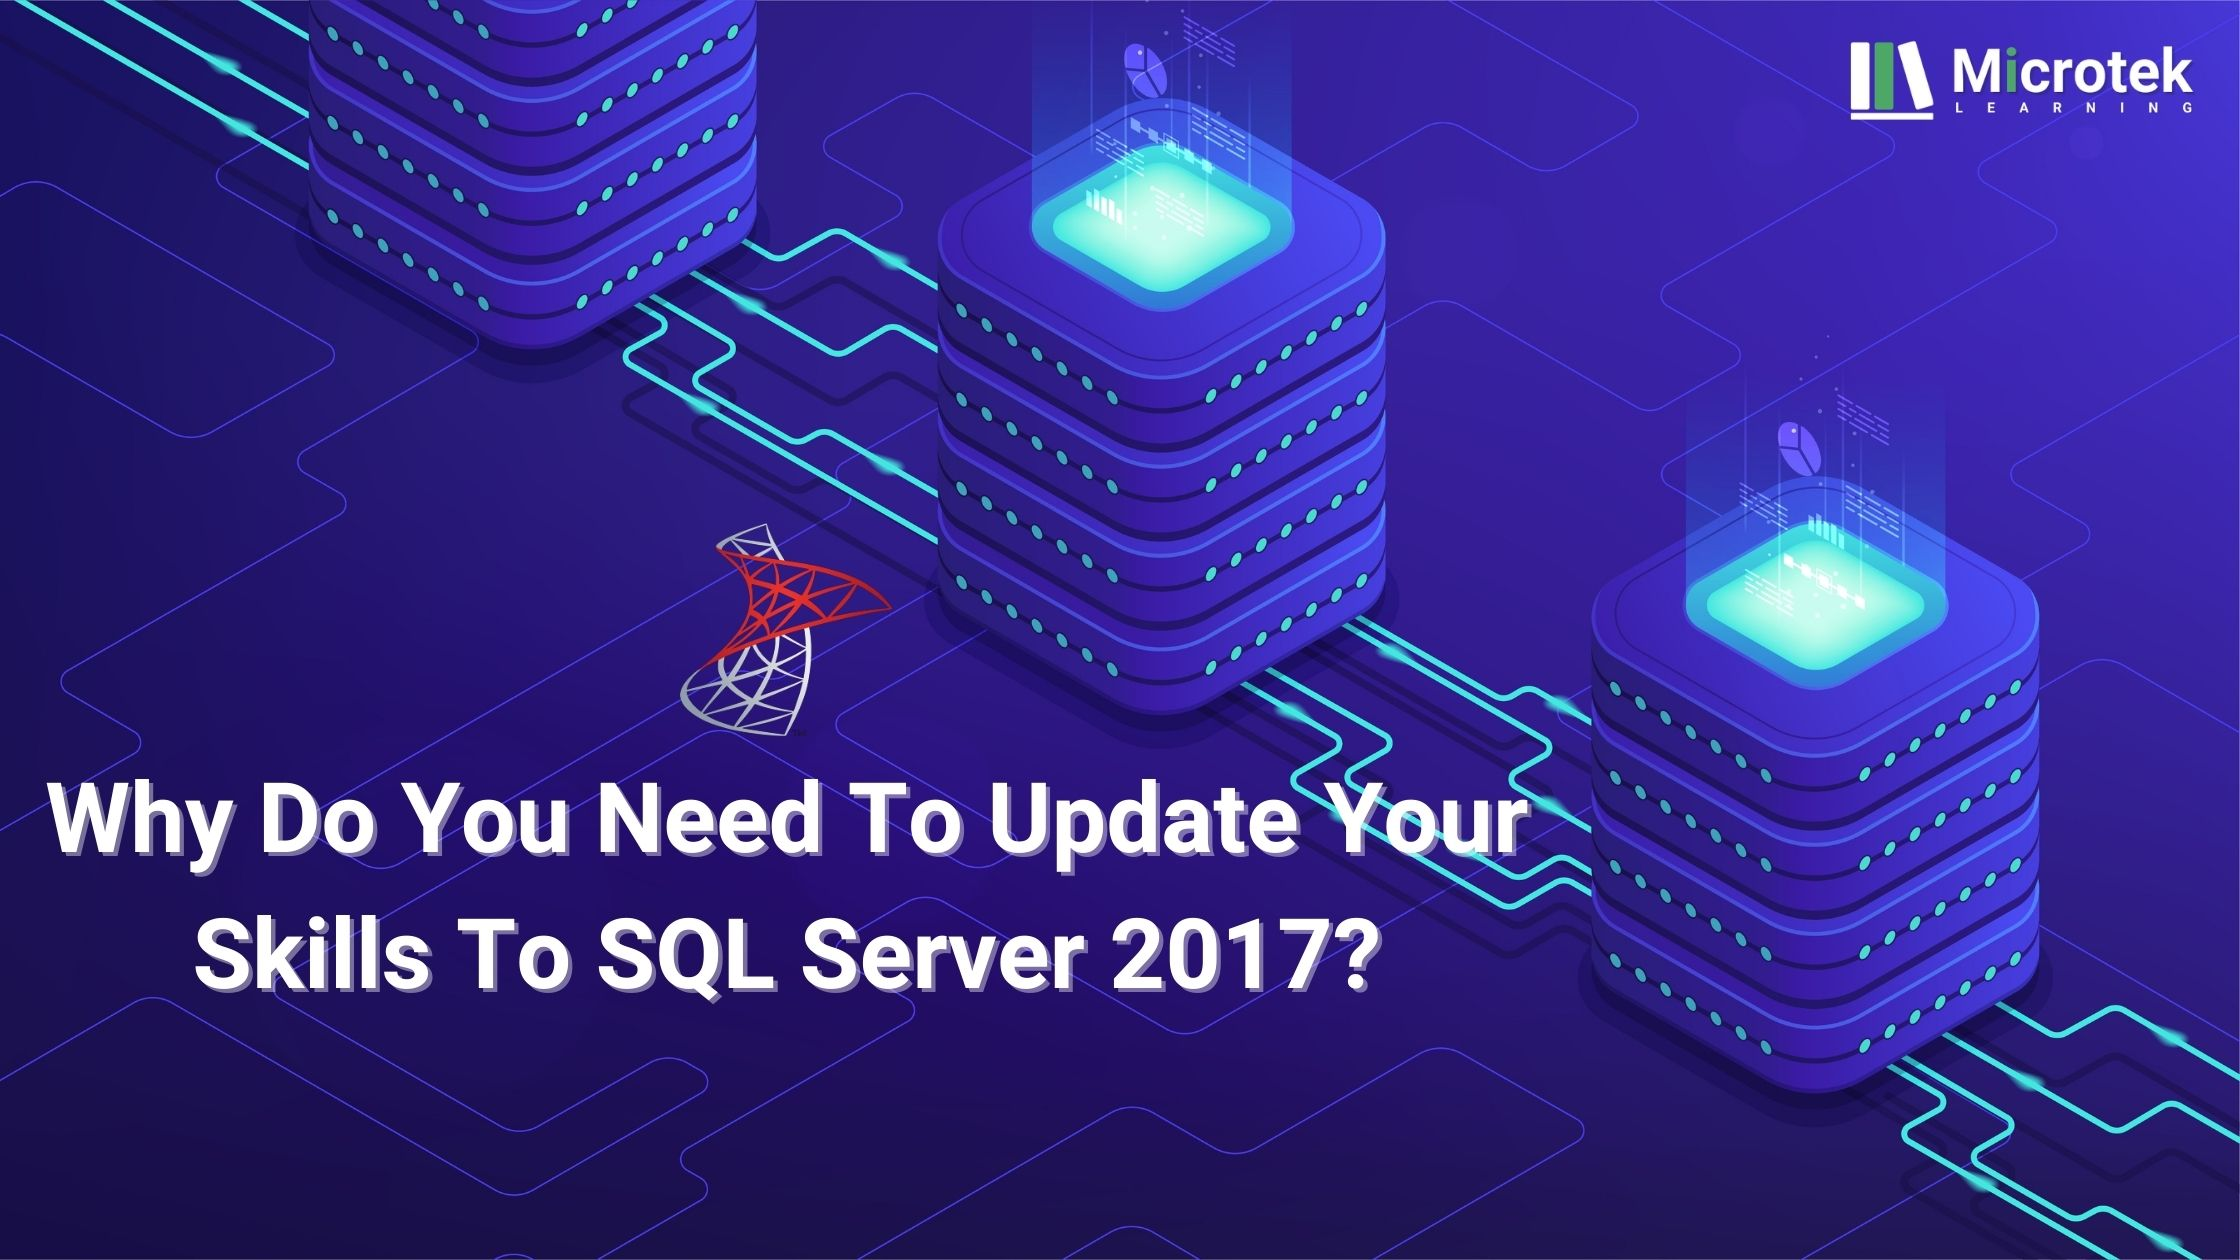 Update Your Skills To SQL Server 2017